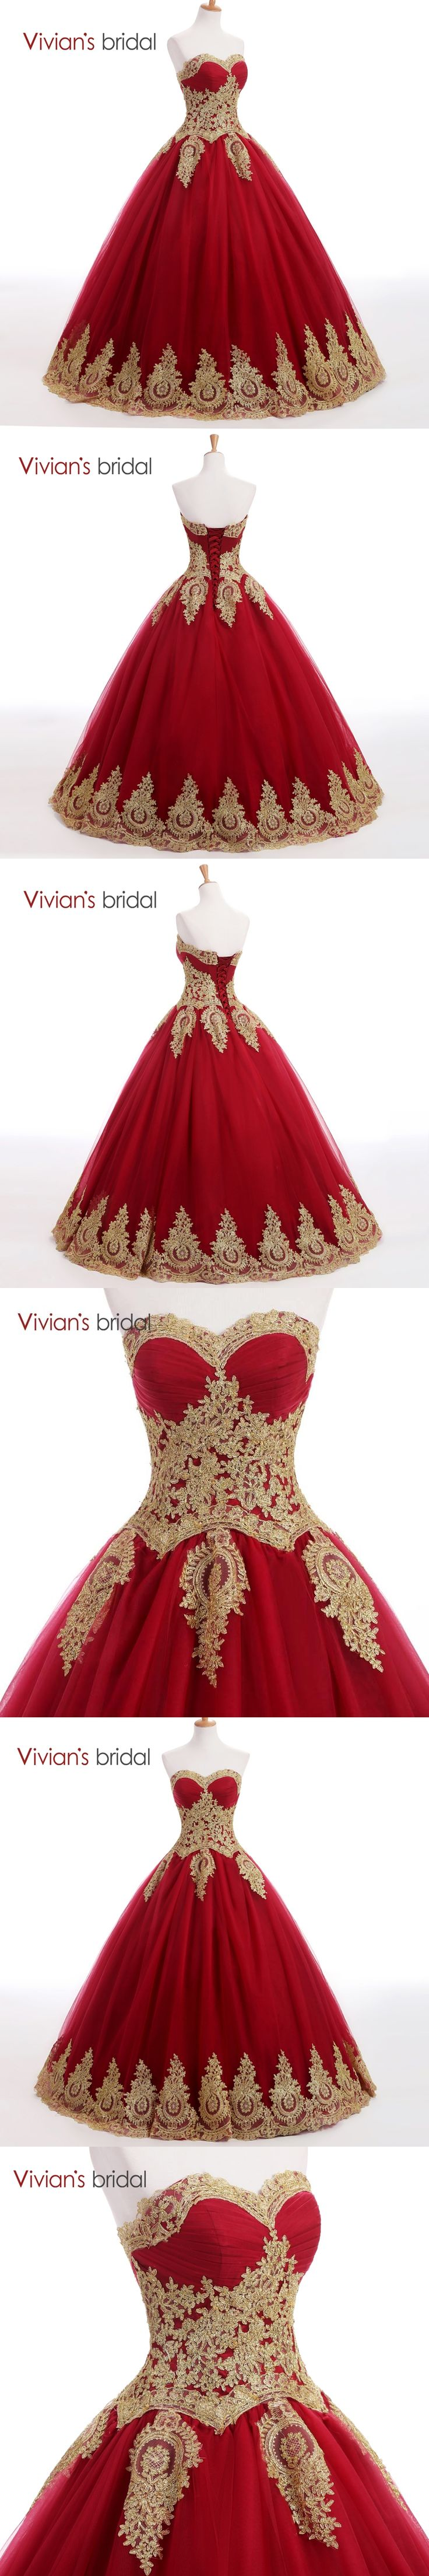 Vivian's Bridal Sweetheart Burgundy Bll Gown Evening Dress Long Prom Dresses Golden Lace Appliques Muslim Evening Gown